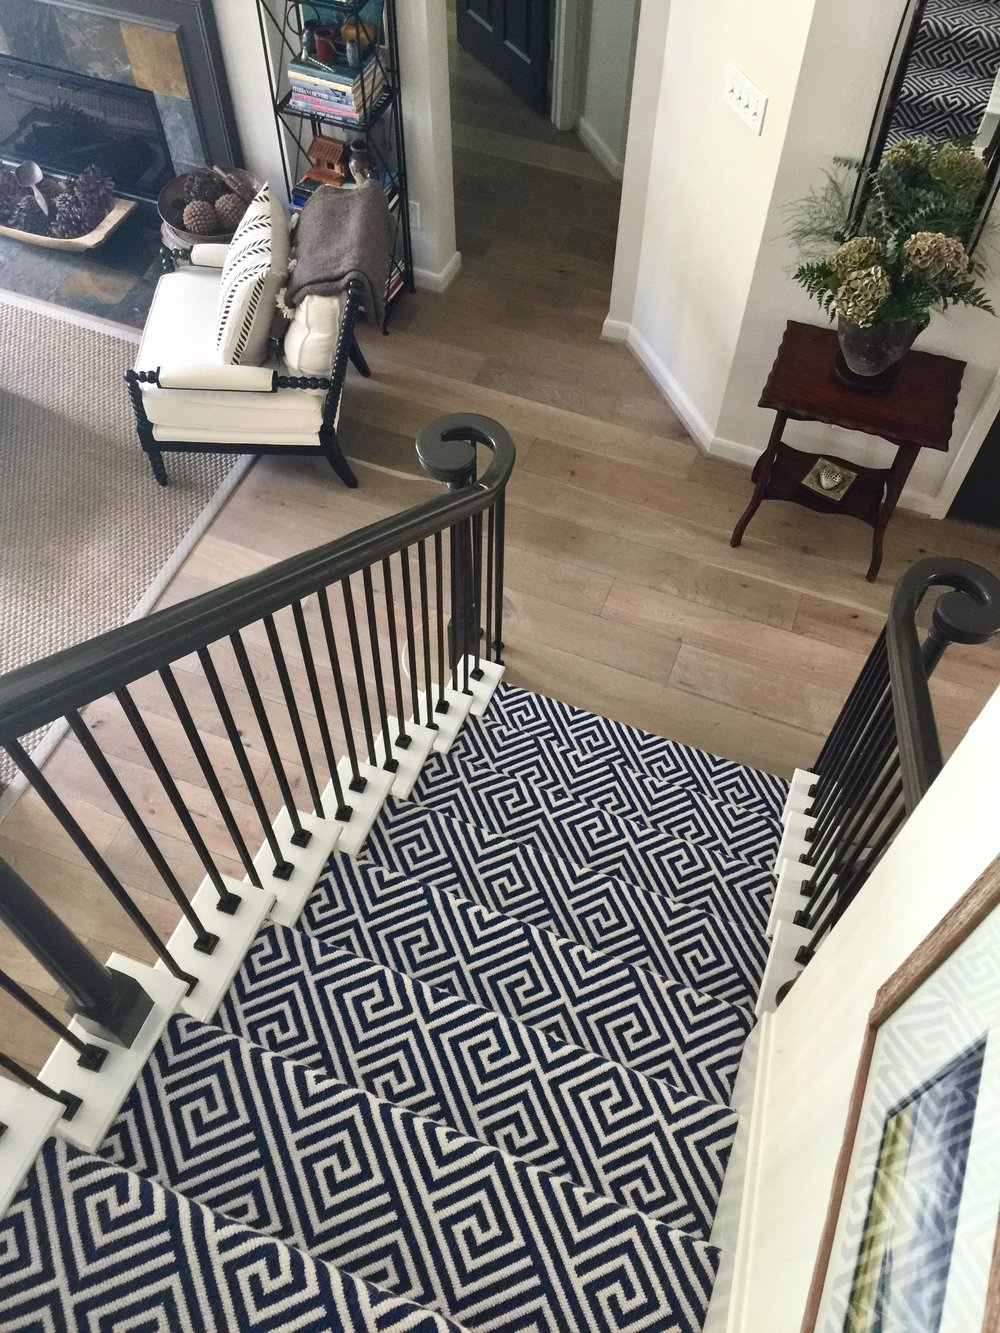 Patterned Stair Carpet In Center Of Open Plan Home With Wood Bottom Step    Designer Carla